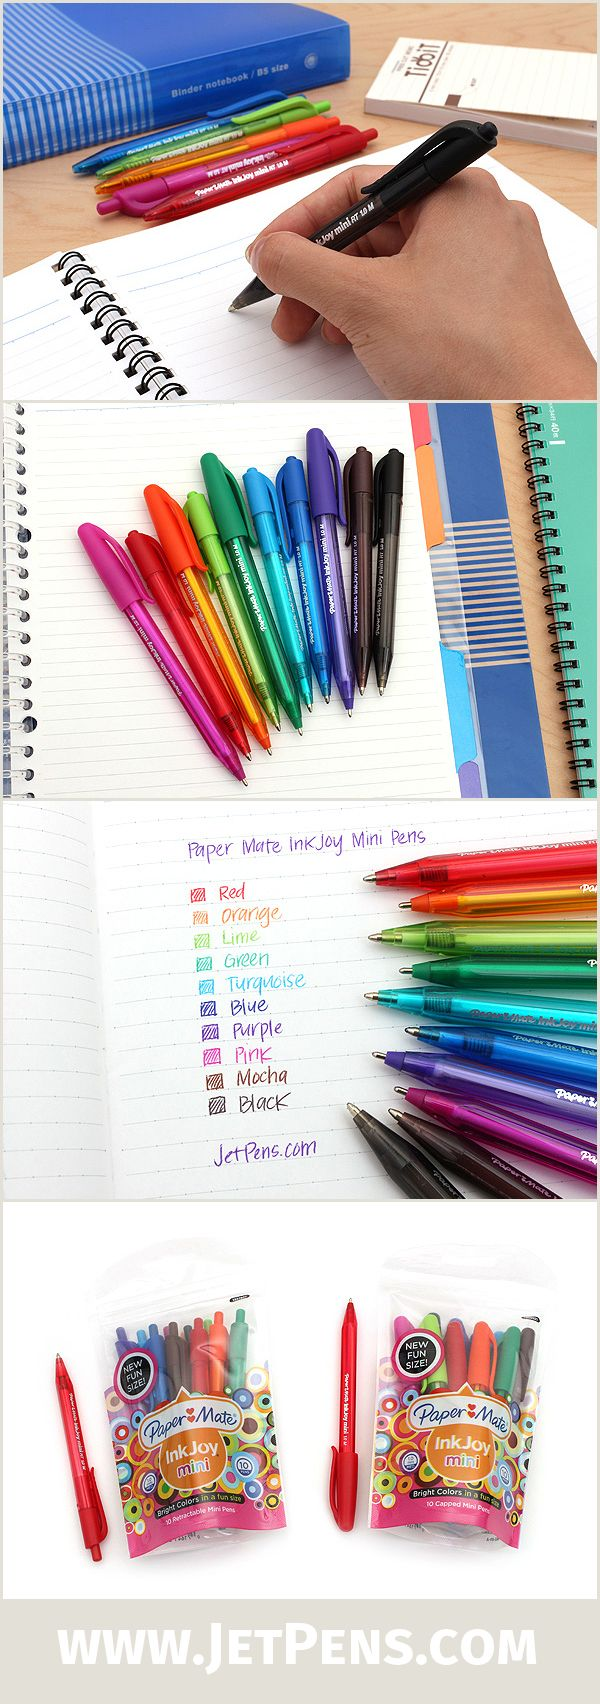 The new Paper Mate Inkjoy Mini Ballpoint Pen Sets are easy to toss into a bag or backpack, allowing you to carry 10 vibrant ink colors in a portable, convenient way.